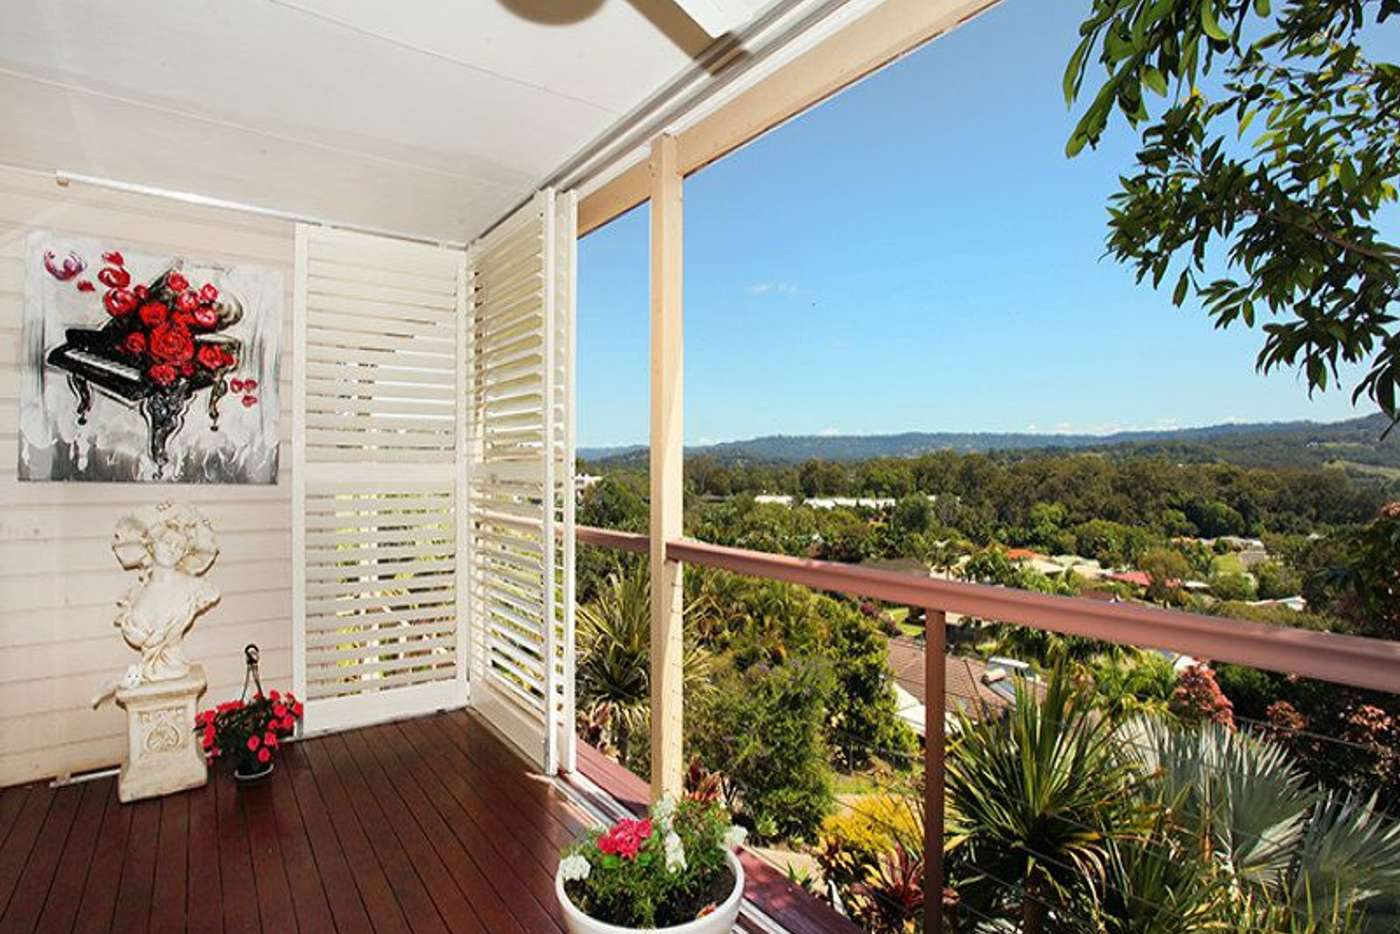 Main view of Homely house listing, 6 Kooyonga Court, Nambour QLD 4560